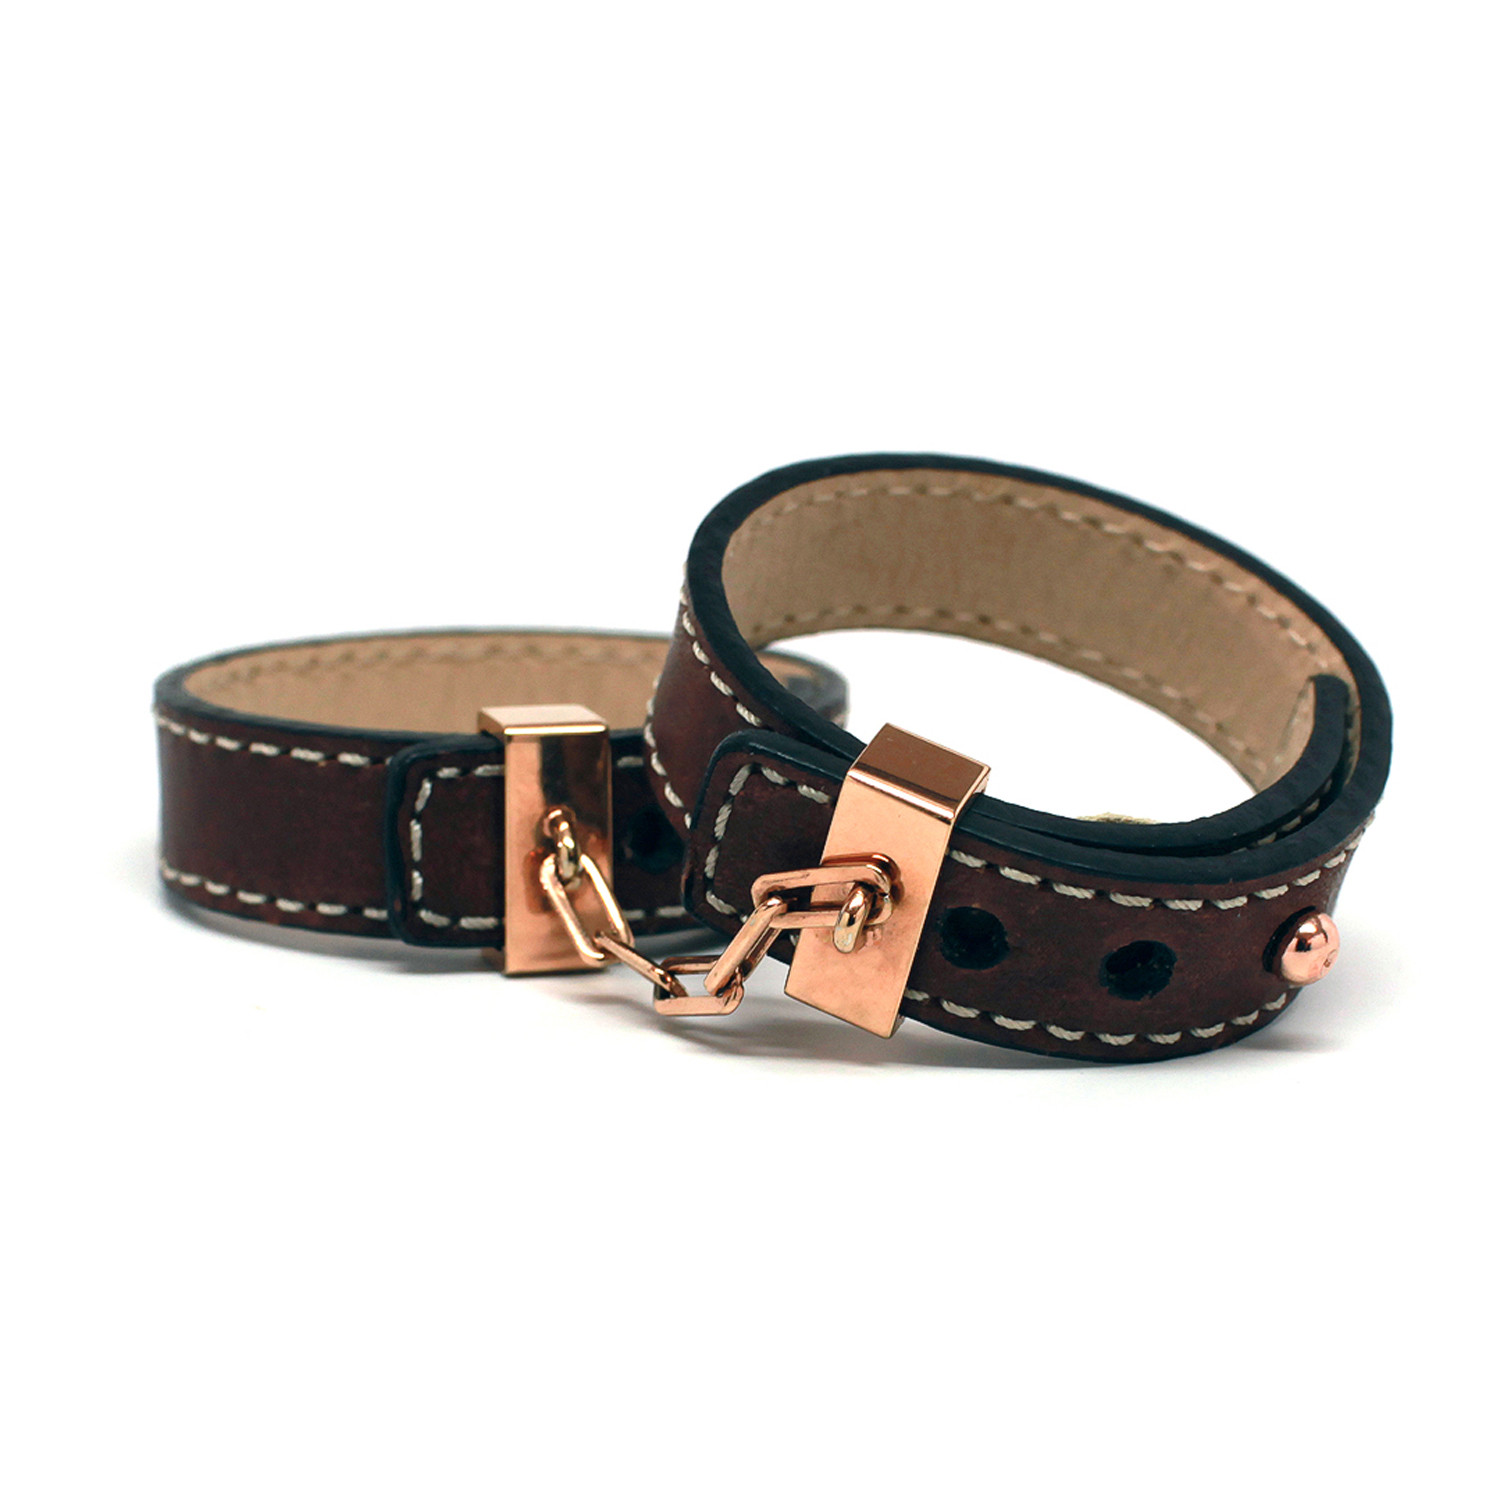 leather handcuffs rose gold brown incoqnito touch